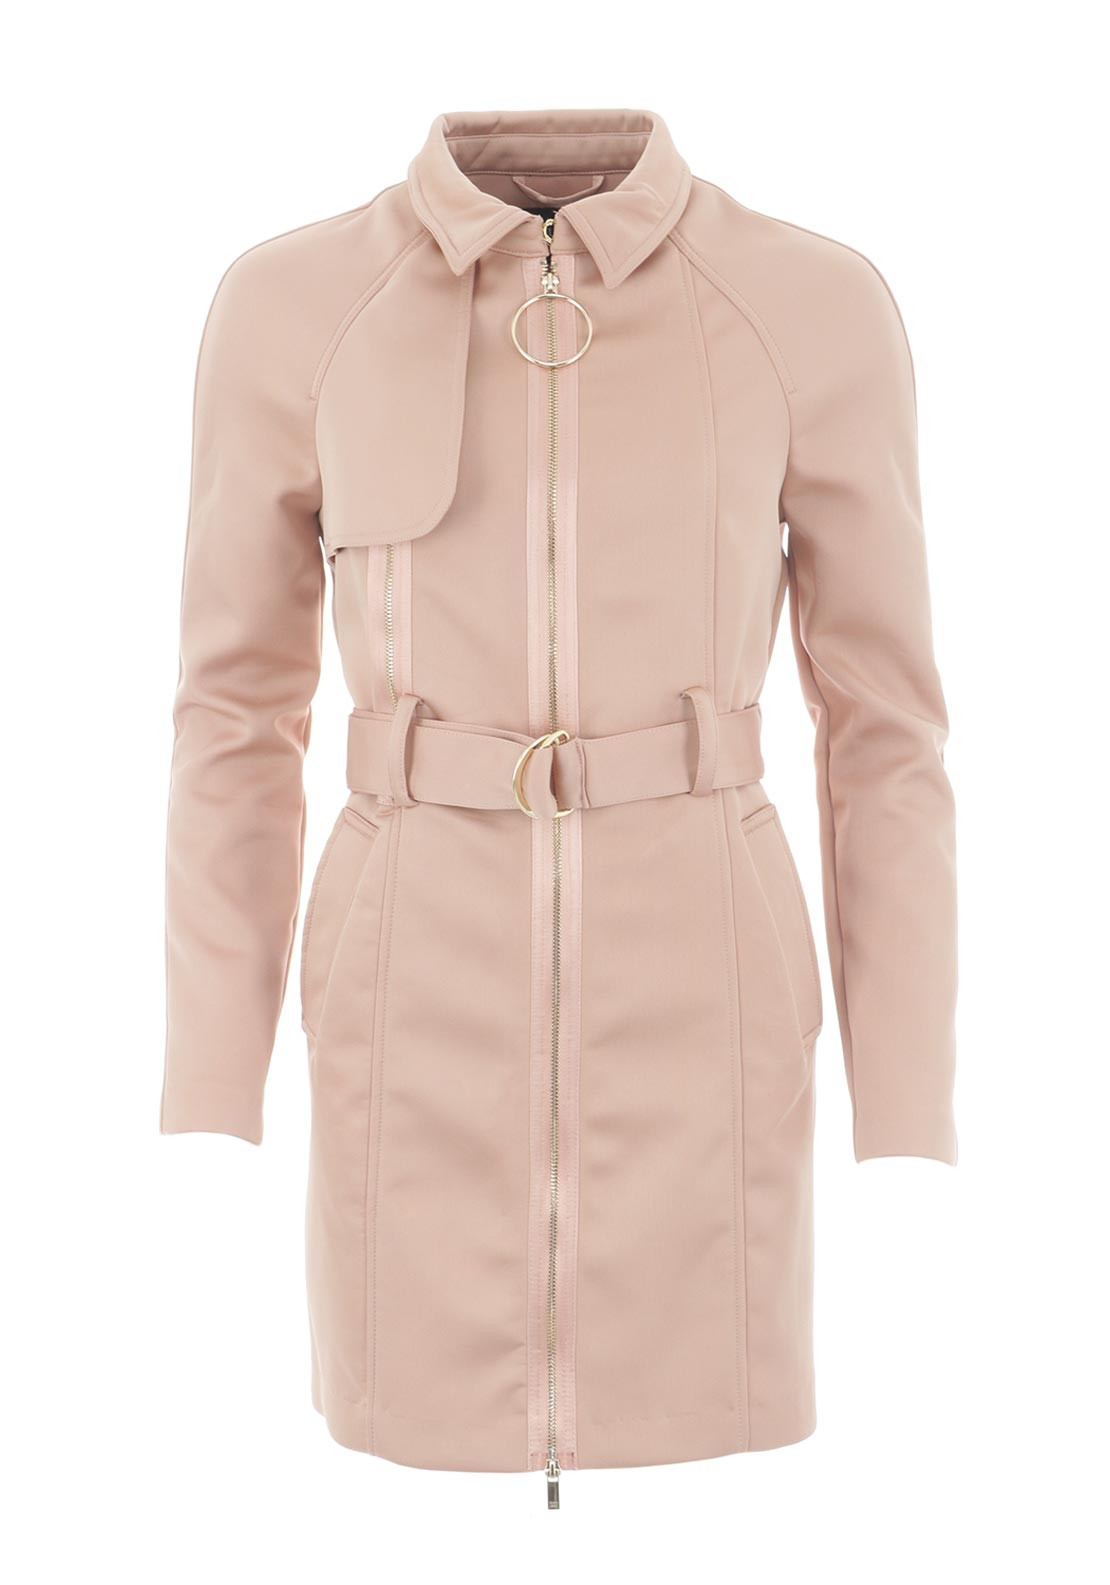 Guess Womens Trench Coat Nude Mcelhinneys